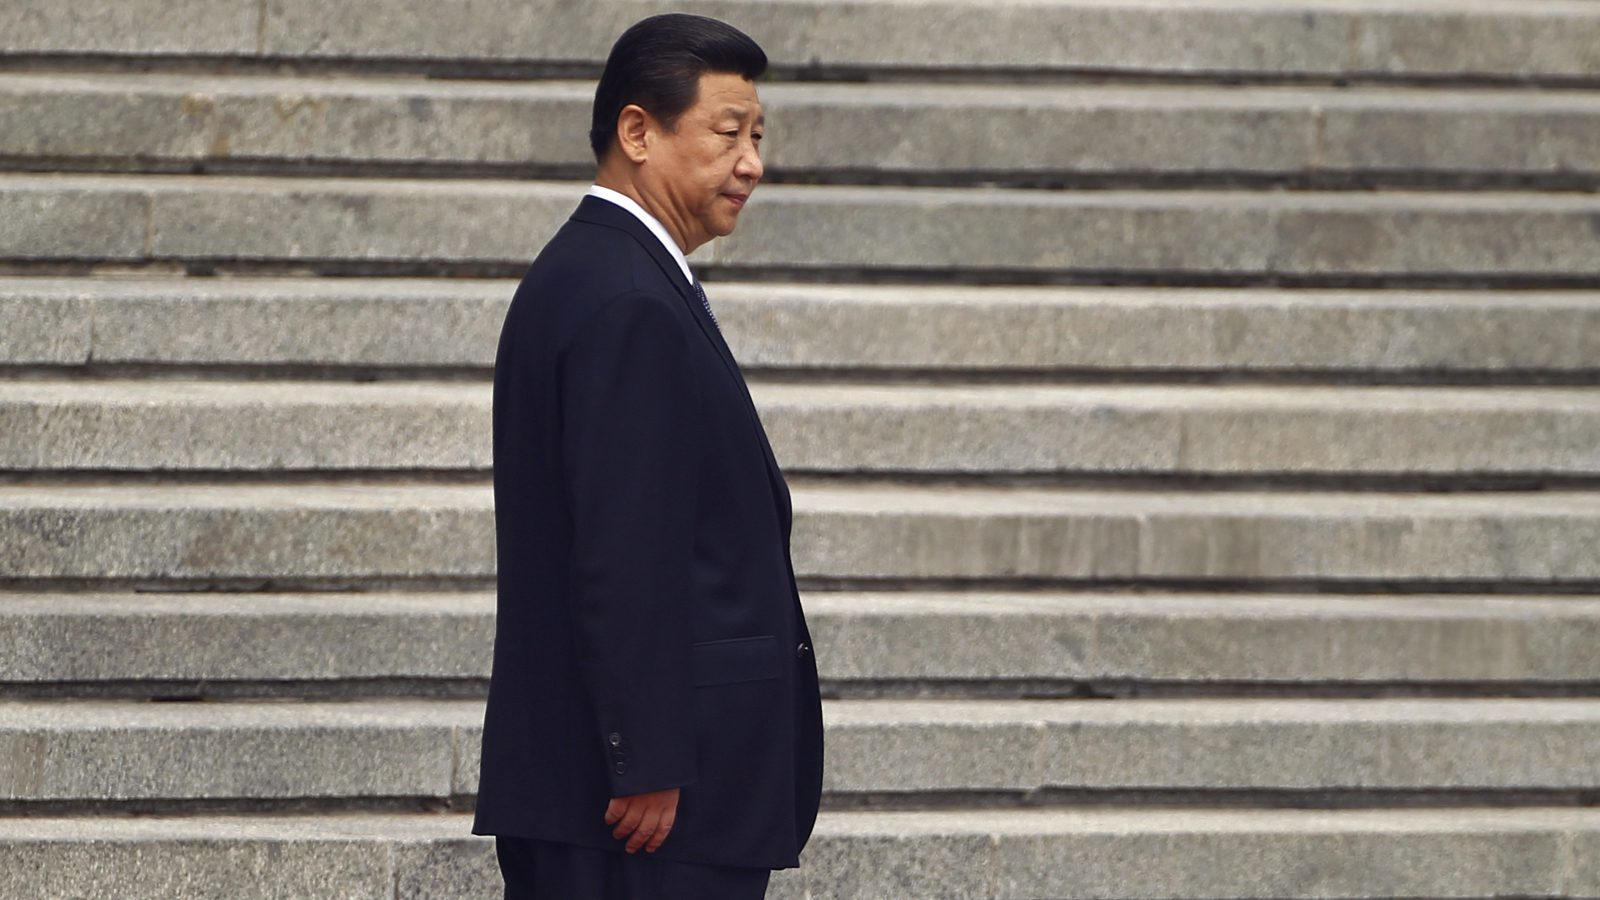 China's President Xi Jinping on some steps.